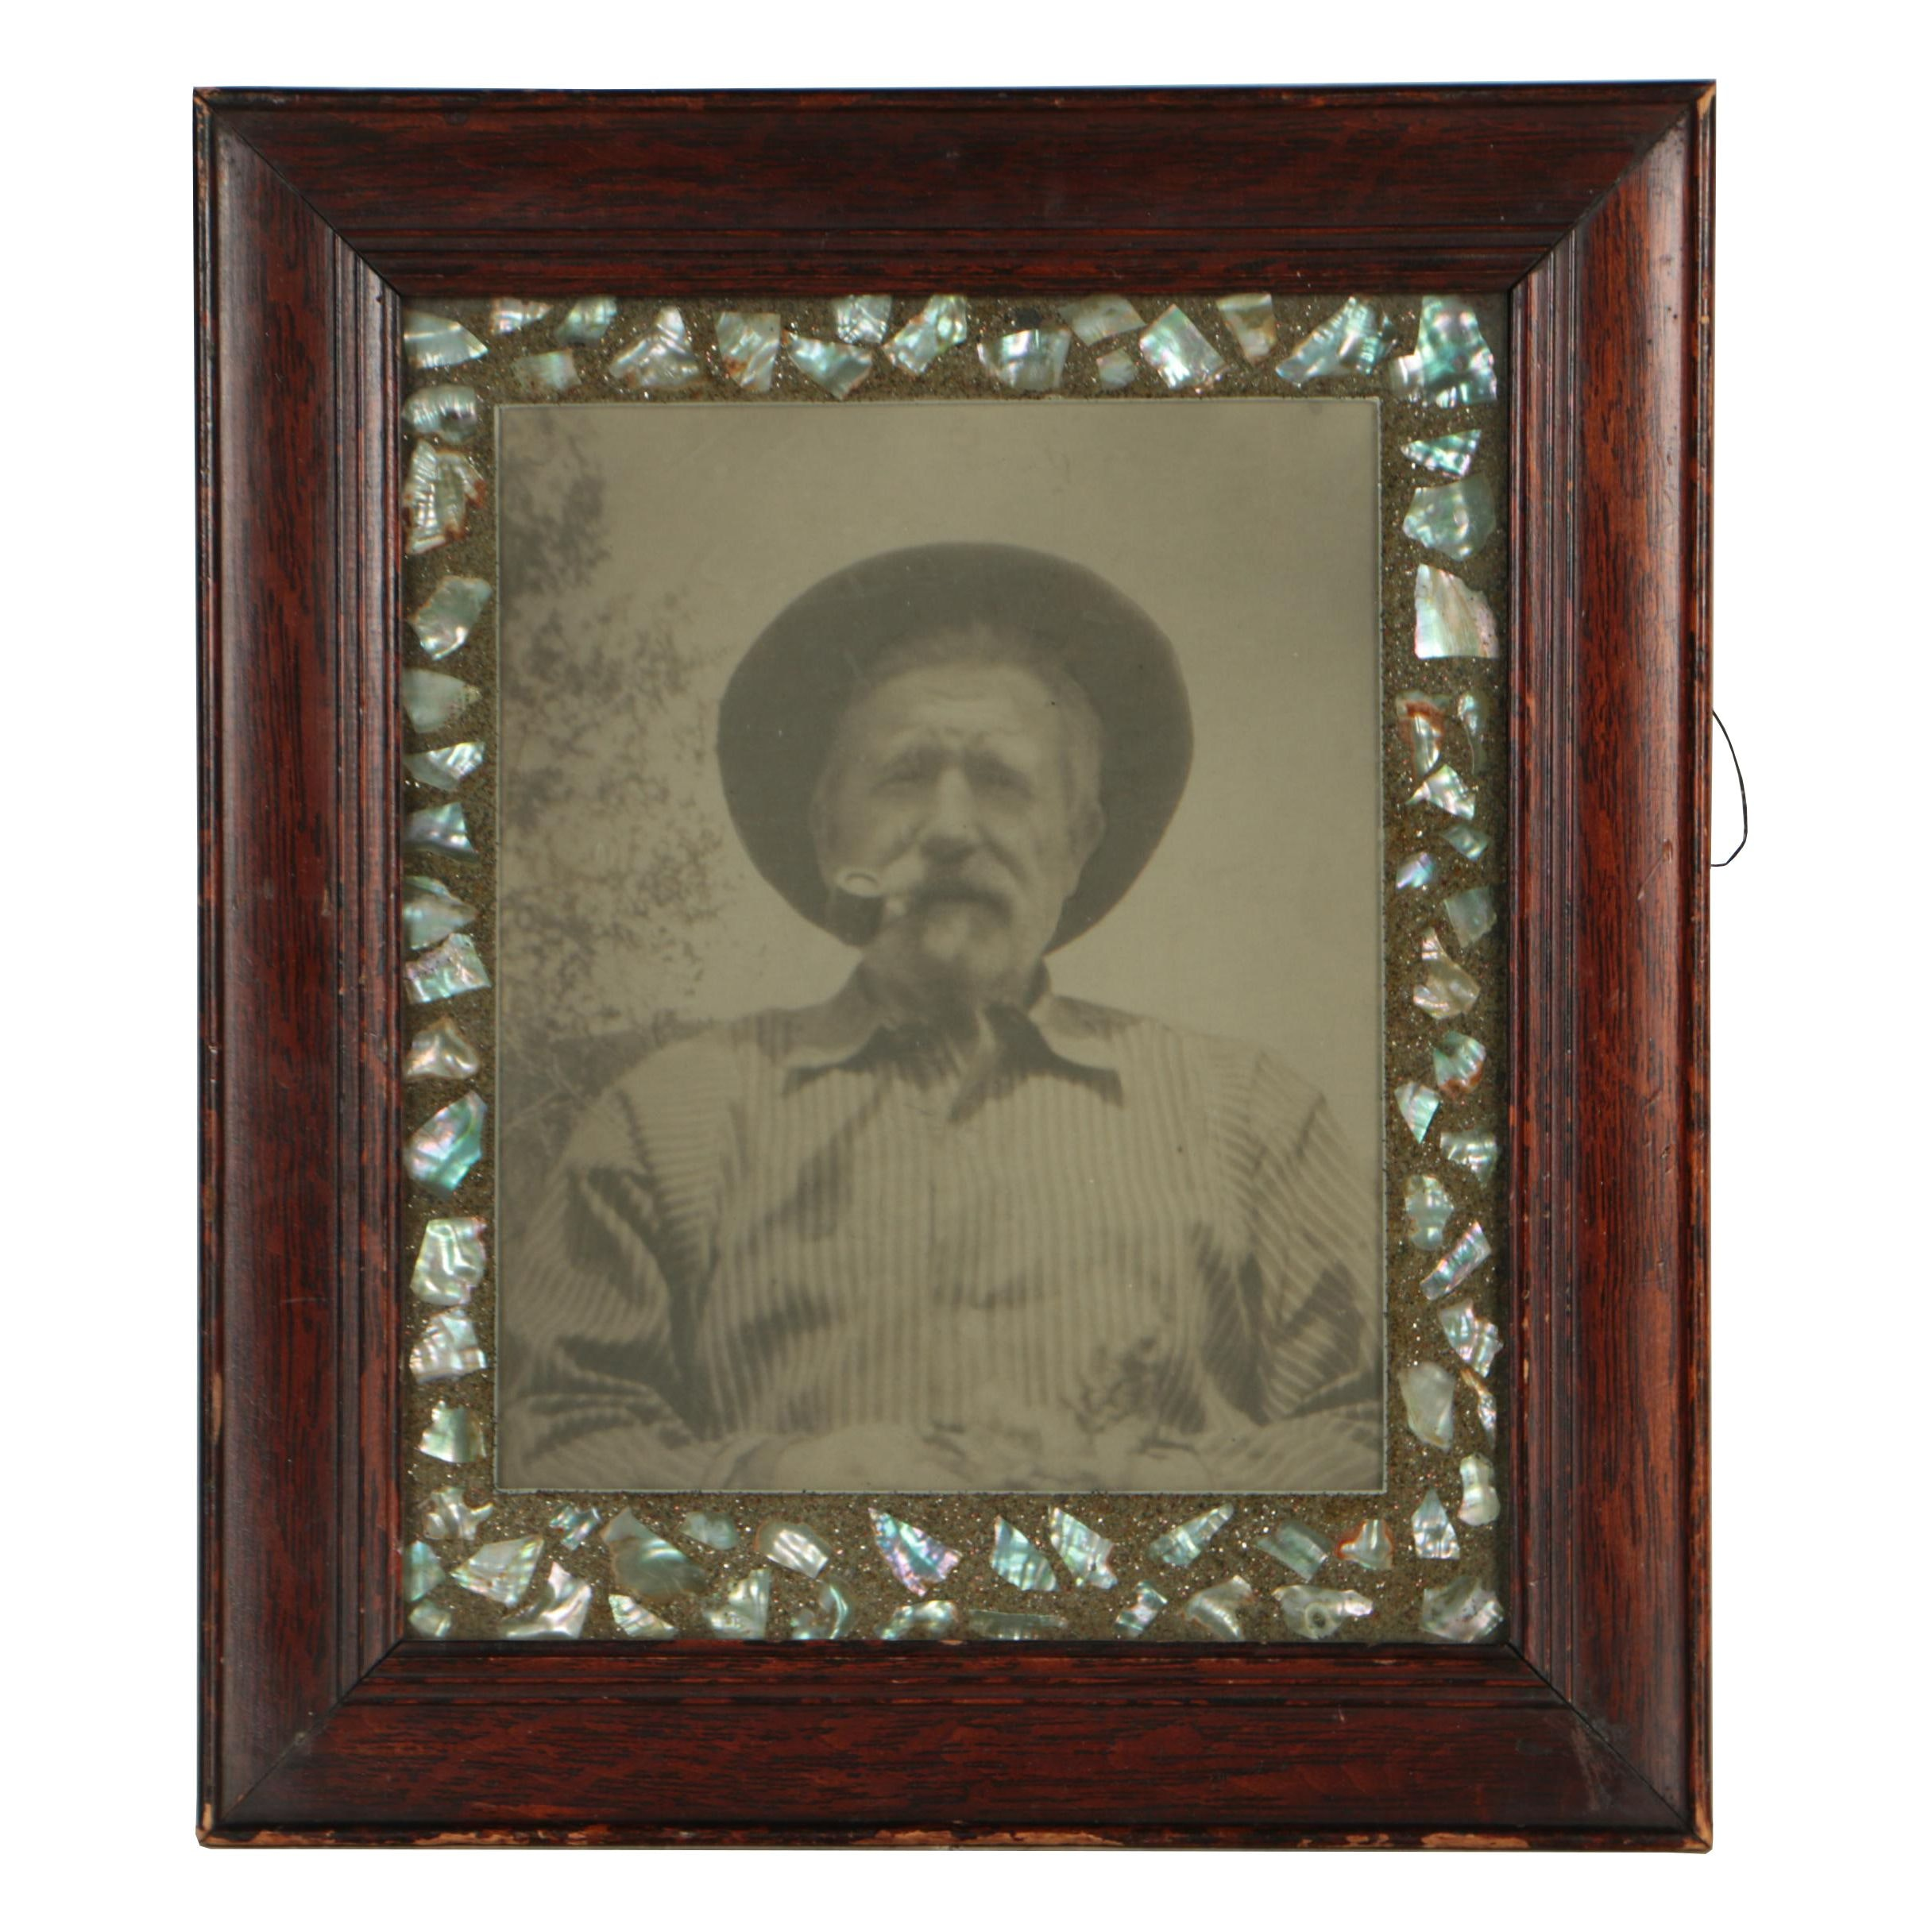 Silver Gelatin Photograph Portrait in a Wood Frame with Abalone